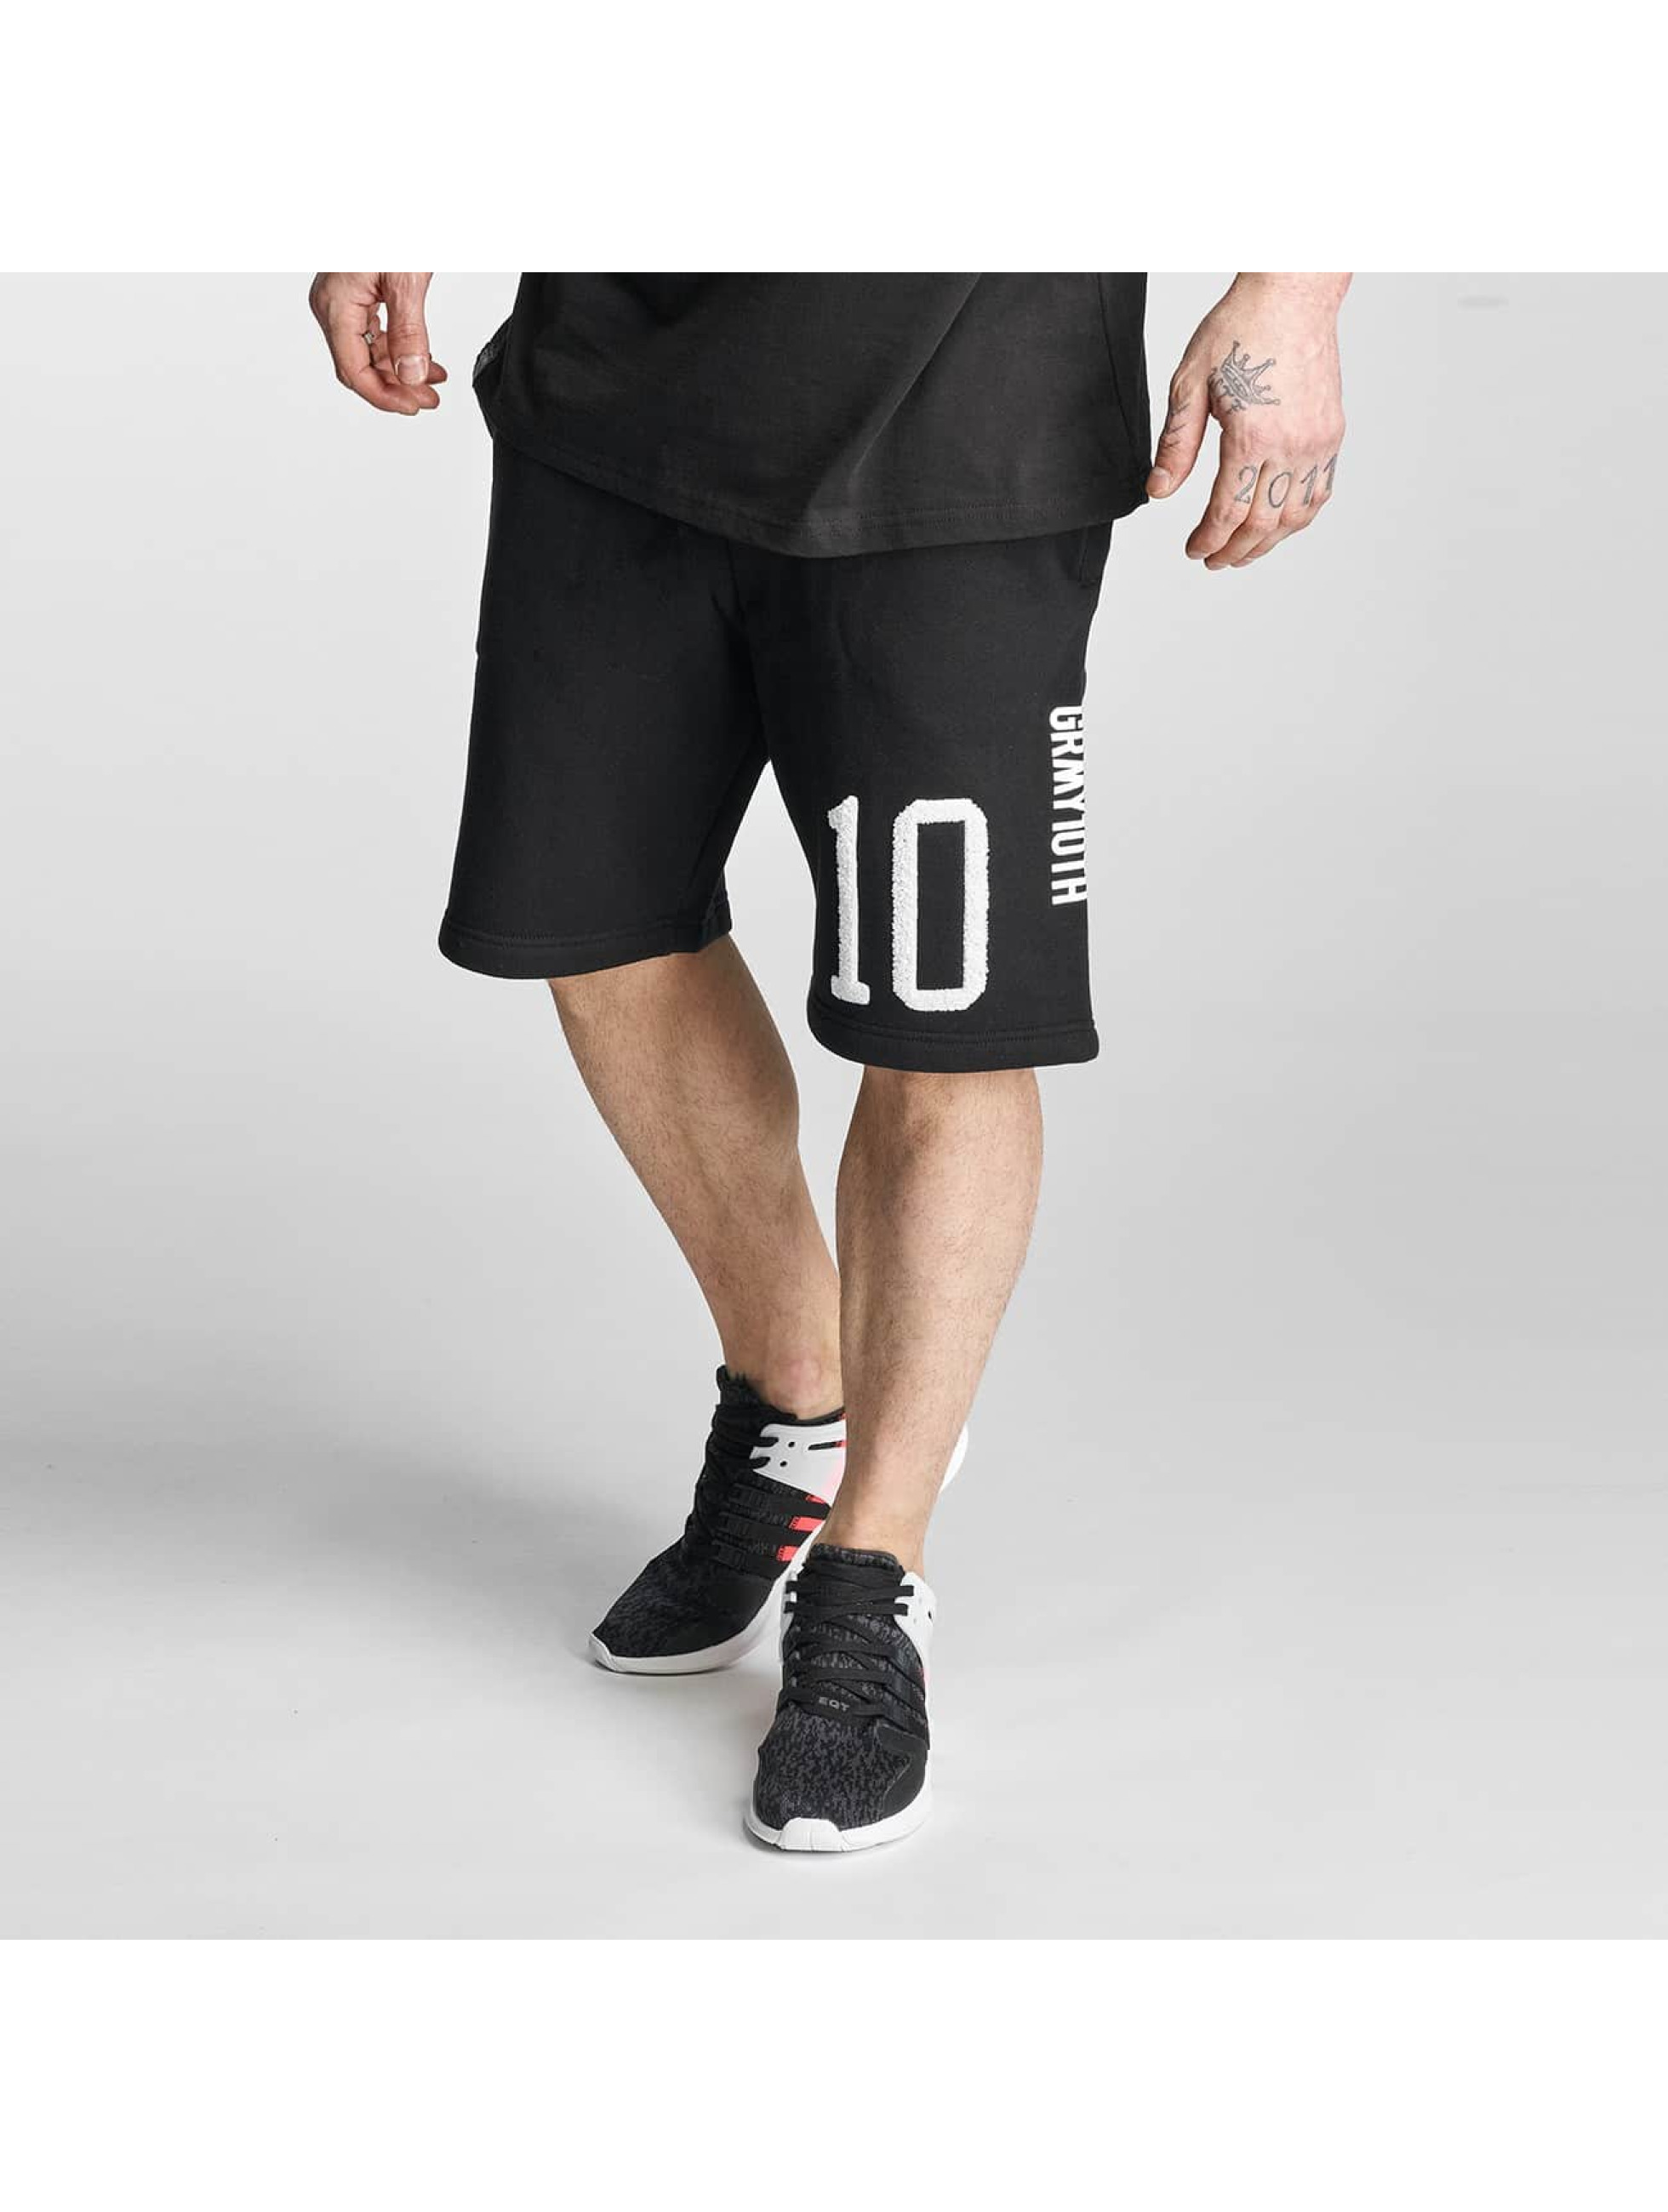 Grimey Wear Männer Shorts X Years in schwarz